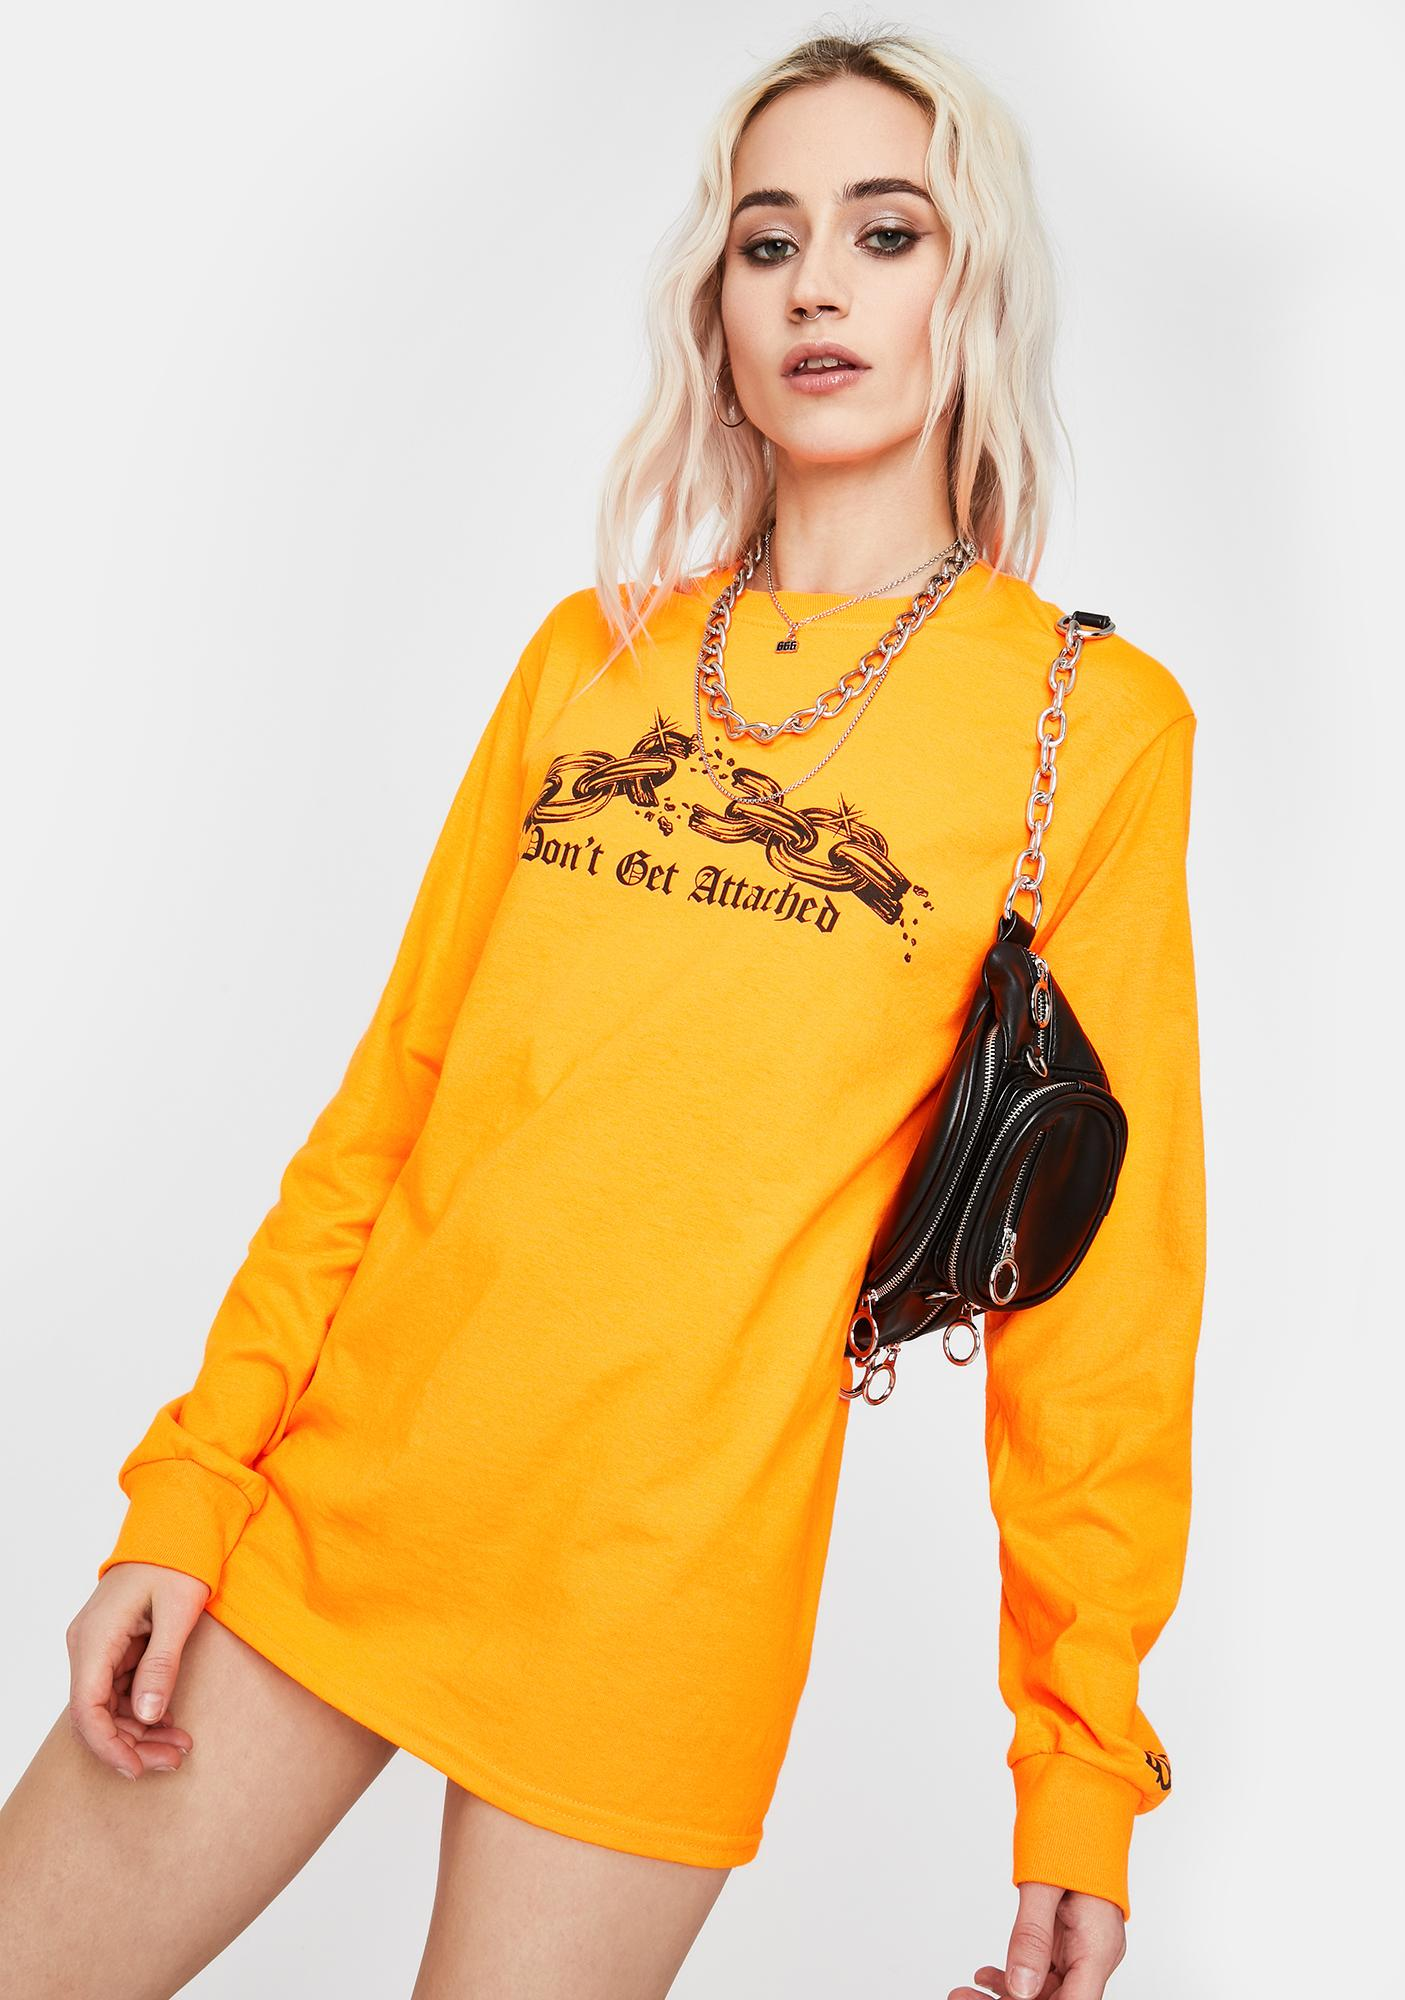 By Samii Ryan Orange Attachments Graphic Long Sleeve Tee